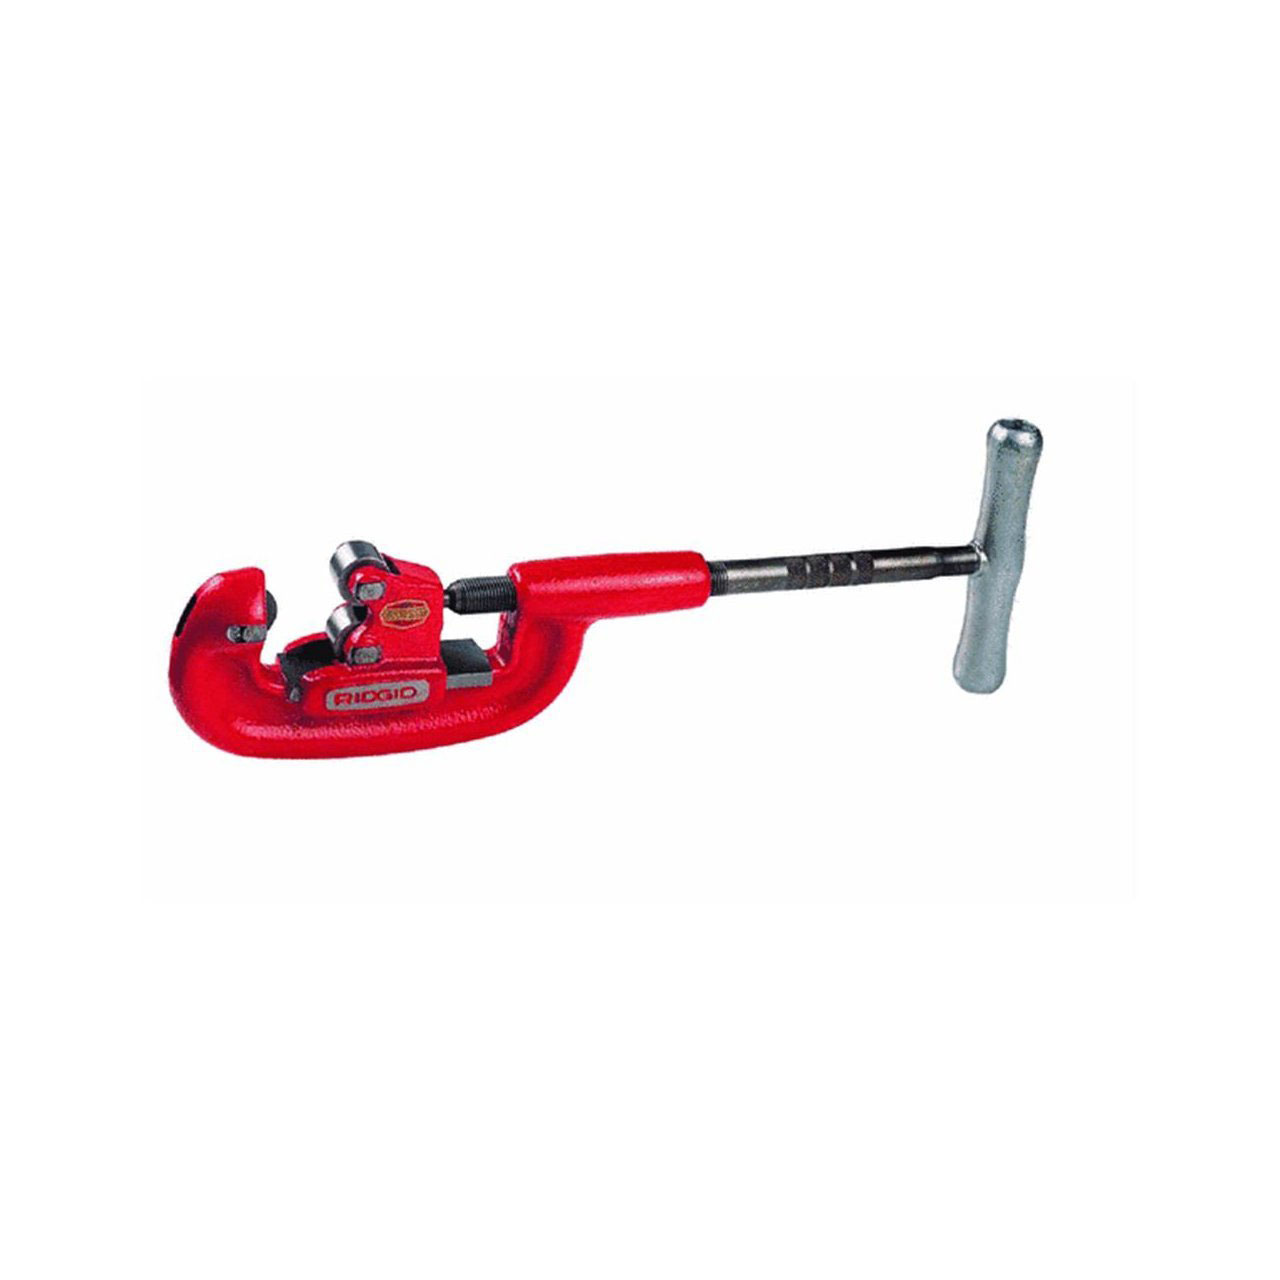 RIDGID 32820 - Heavy Duty Pipe Cutter; Cap: 1/8 to 2in